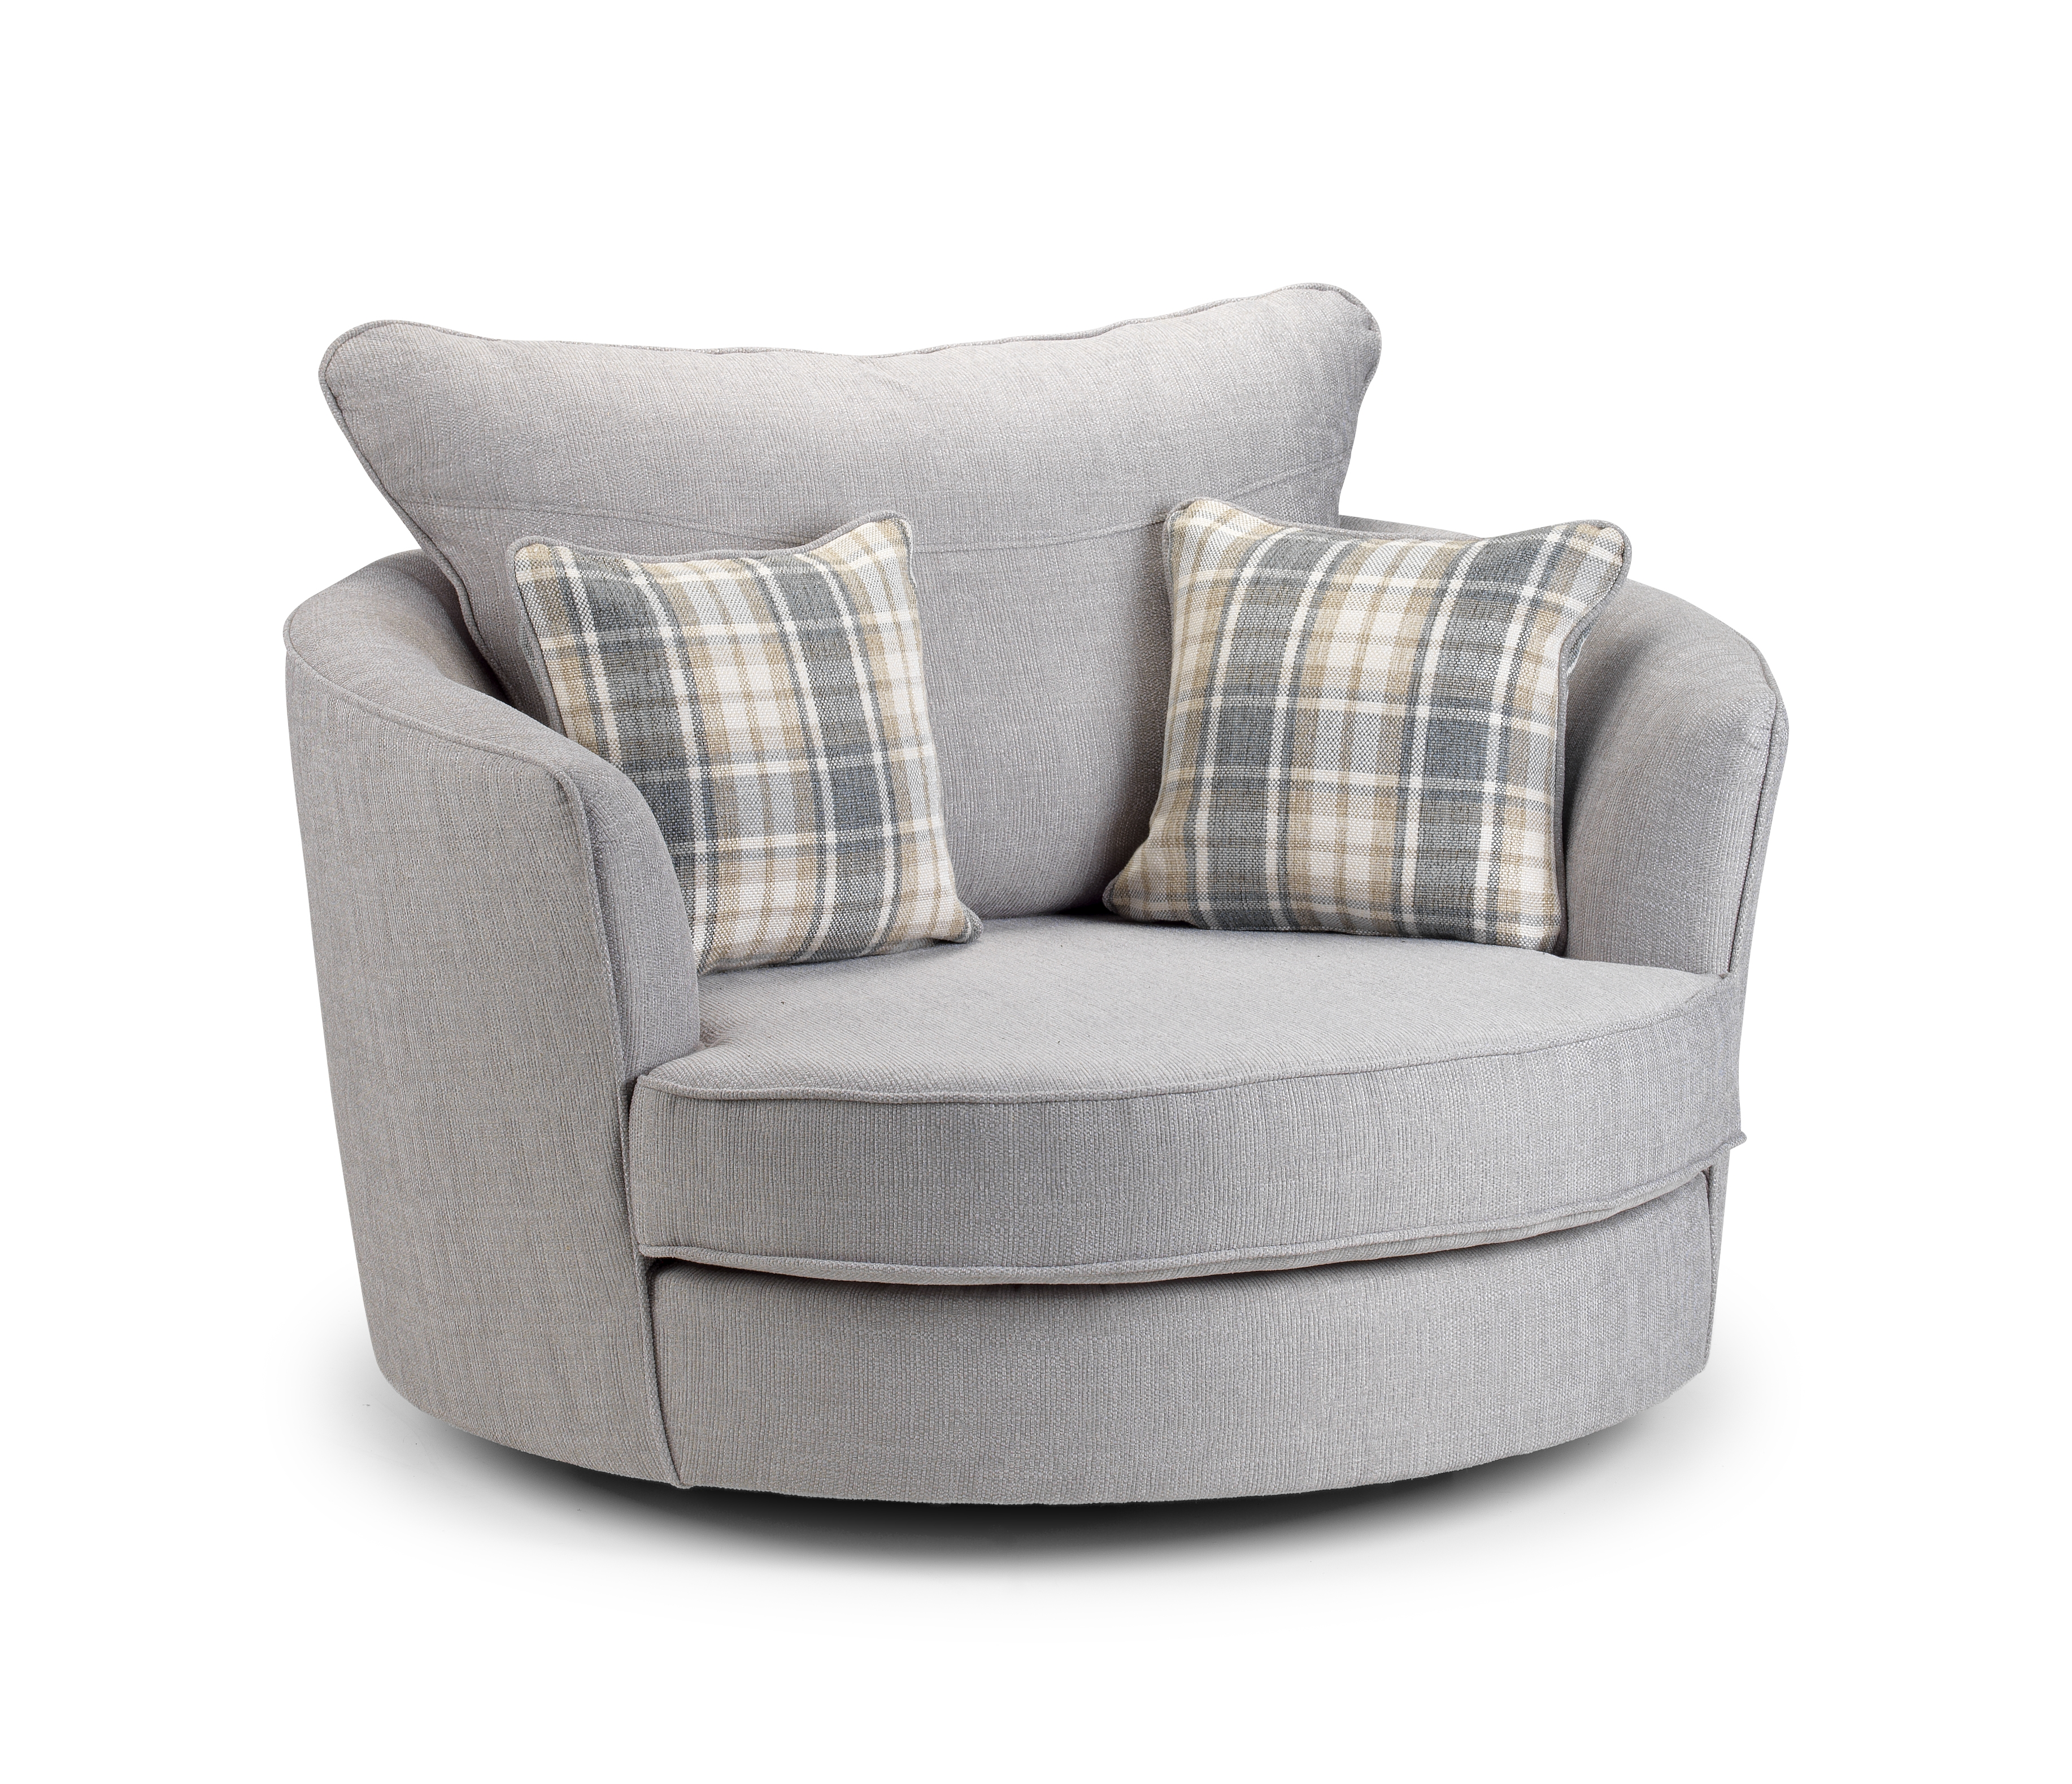 Swivel Sofa Chairs Inside Swivel Sofa Chairs (Image 14 of 15)